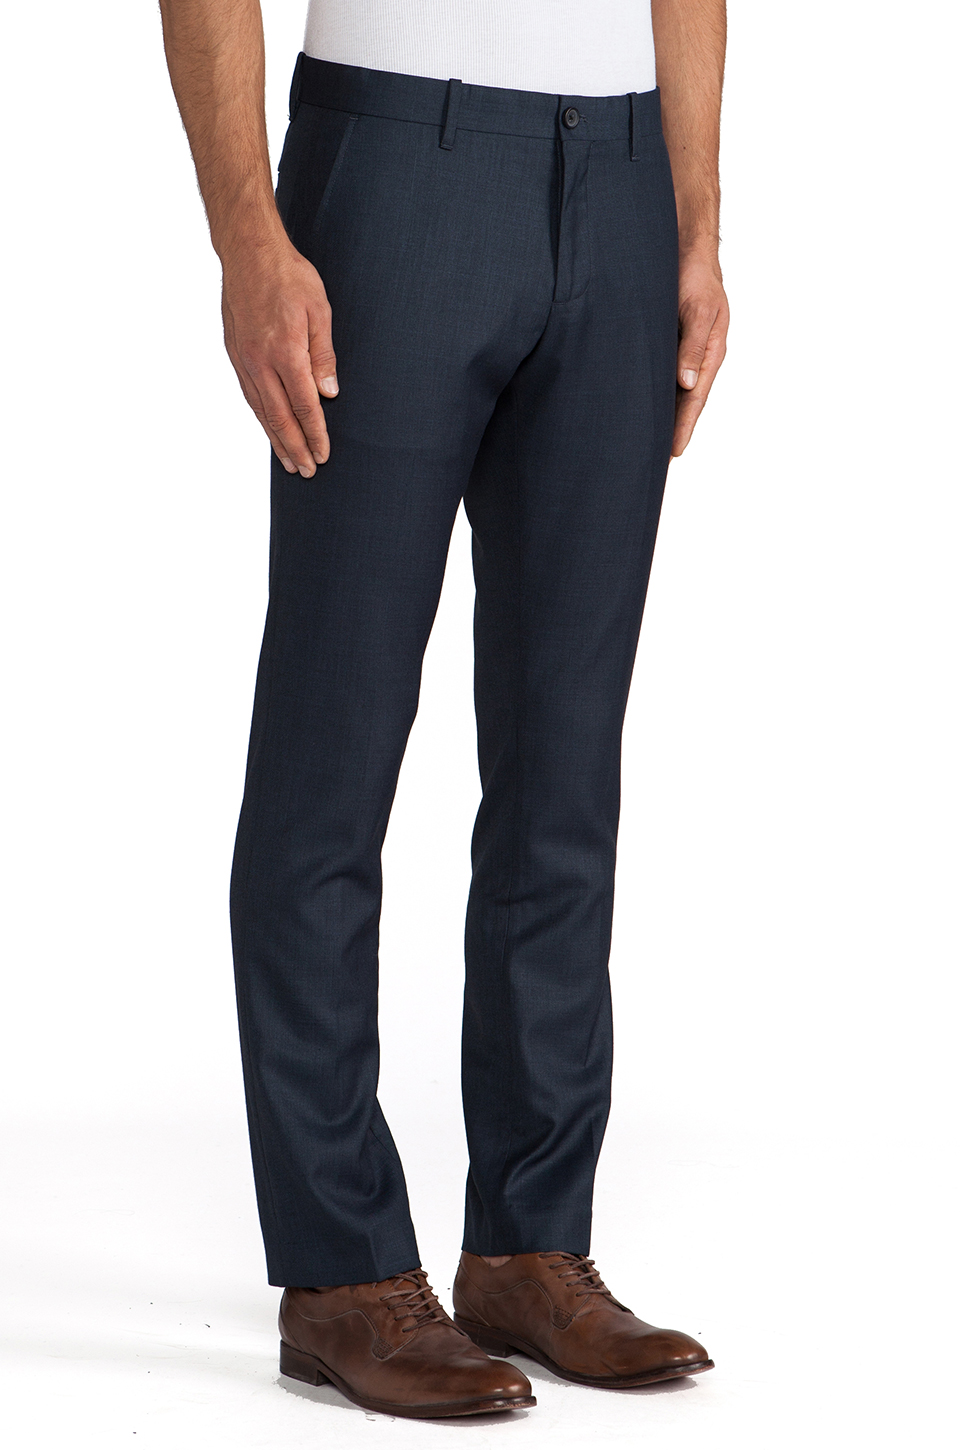 Penguin Heather Tailored Pant in Blue Teal